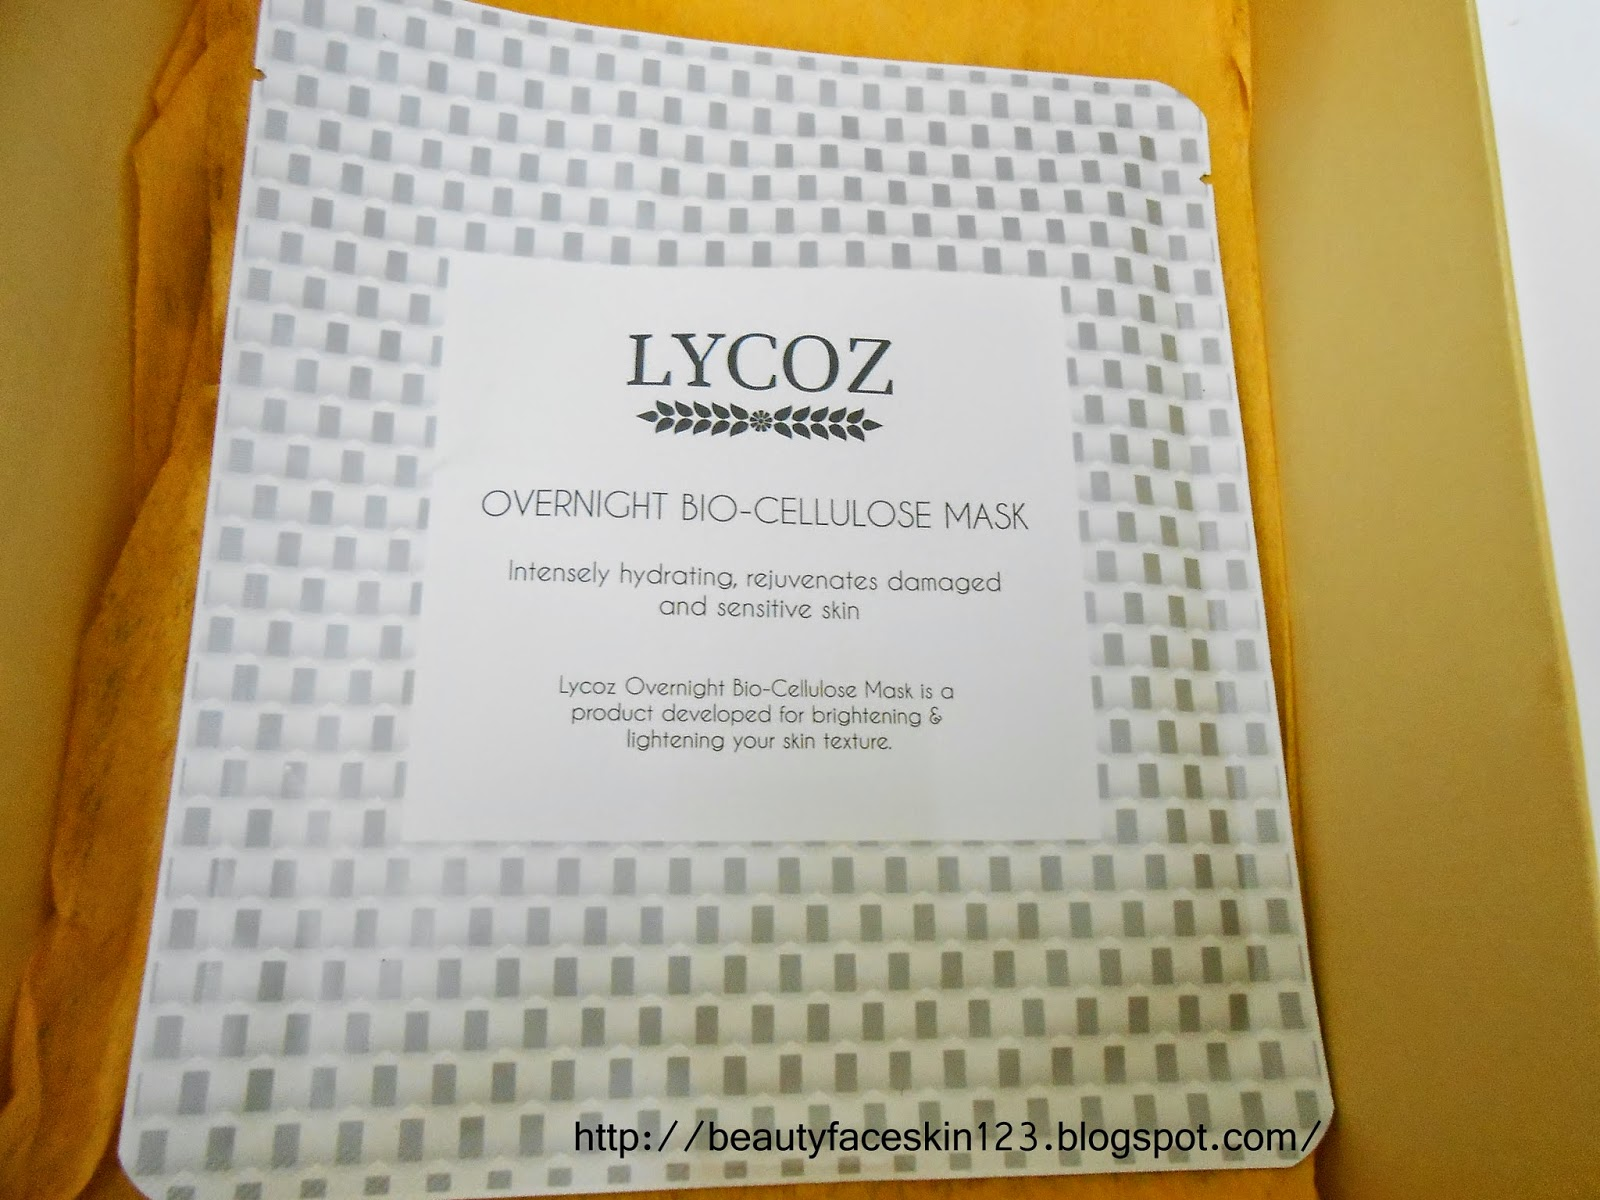 LYCOZ BIO CELLULOSE MASK